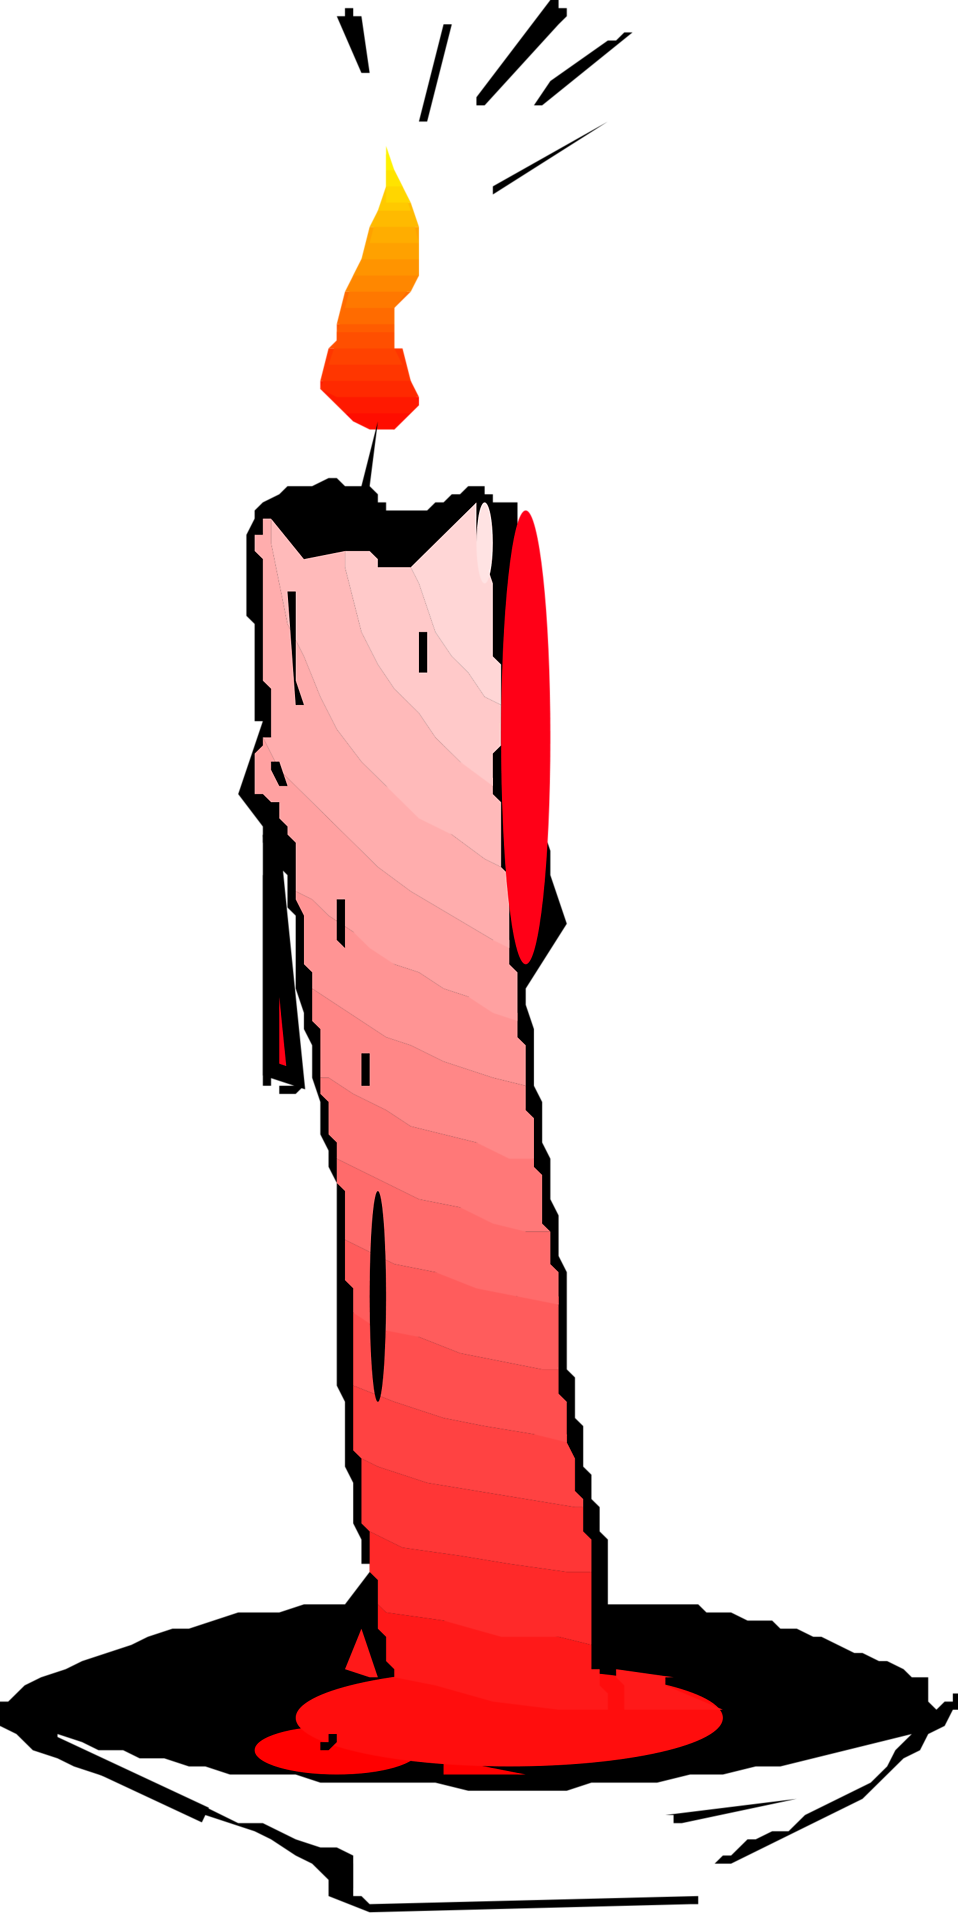 Candlestick drawing abstract. Candle free stock photo